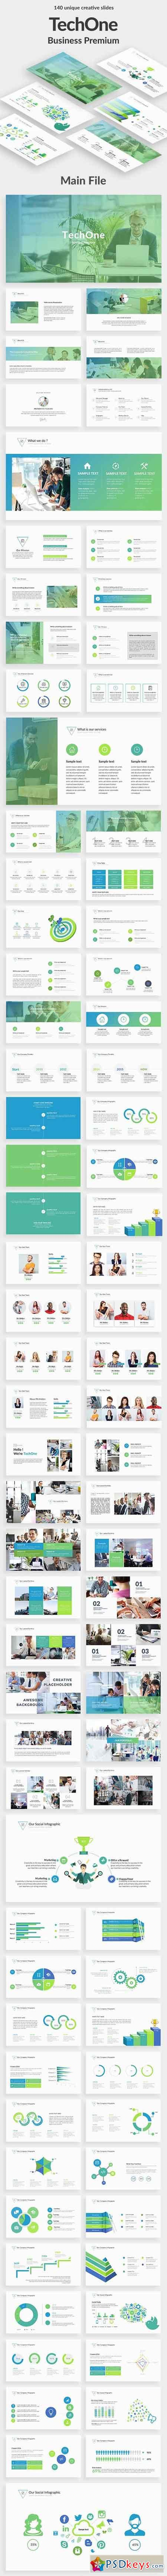 TechOne Business Powerpoint Template 20470022